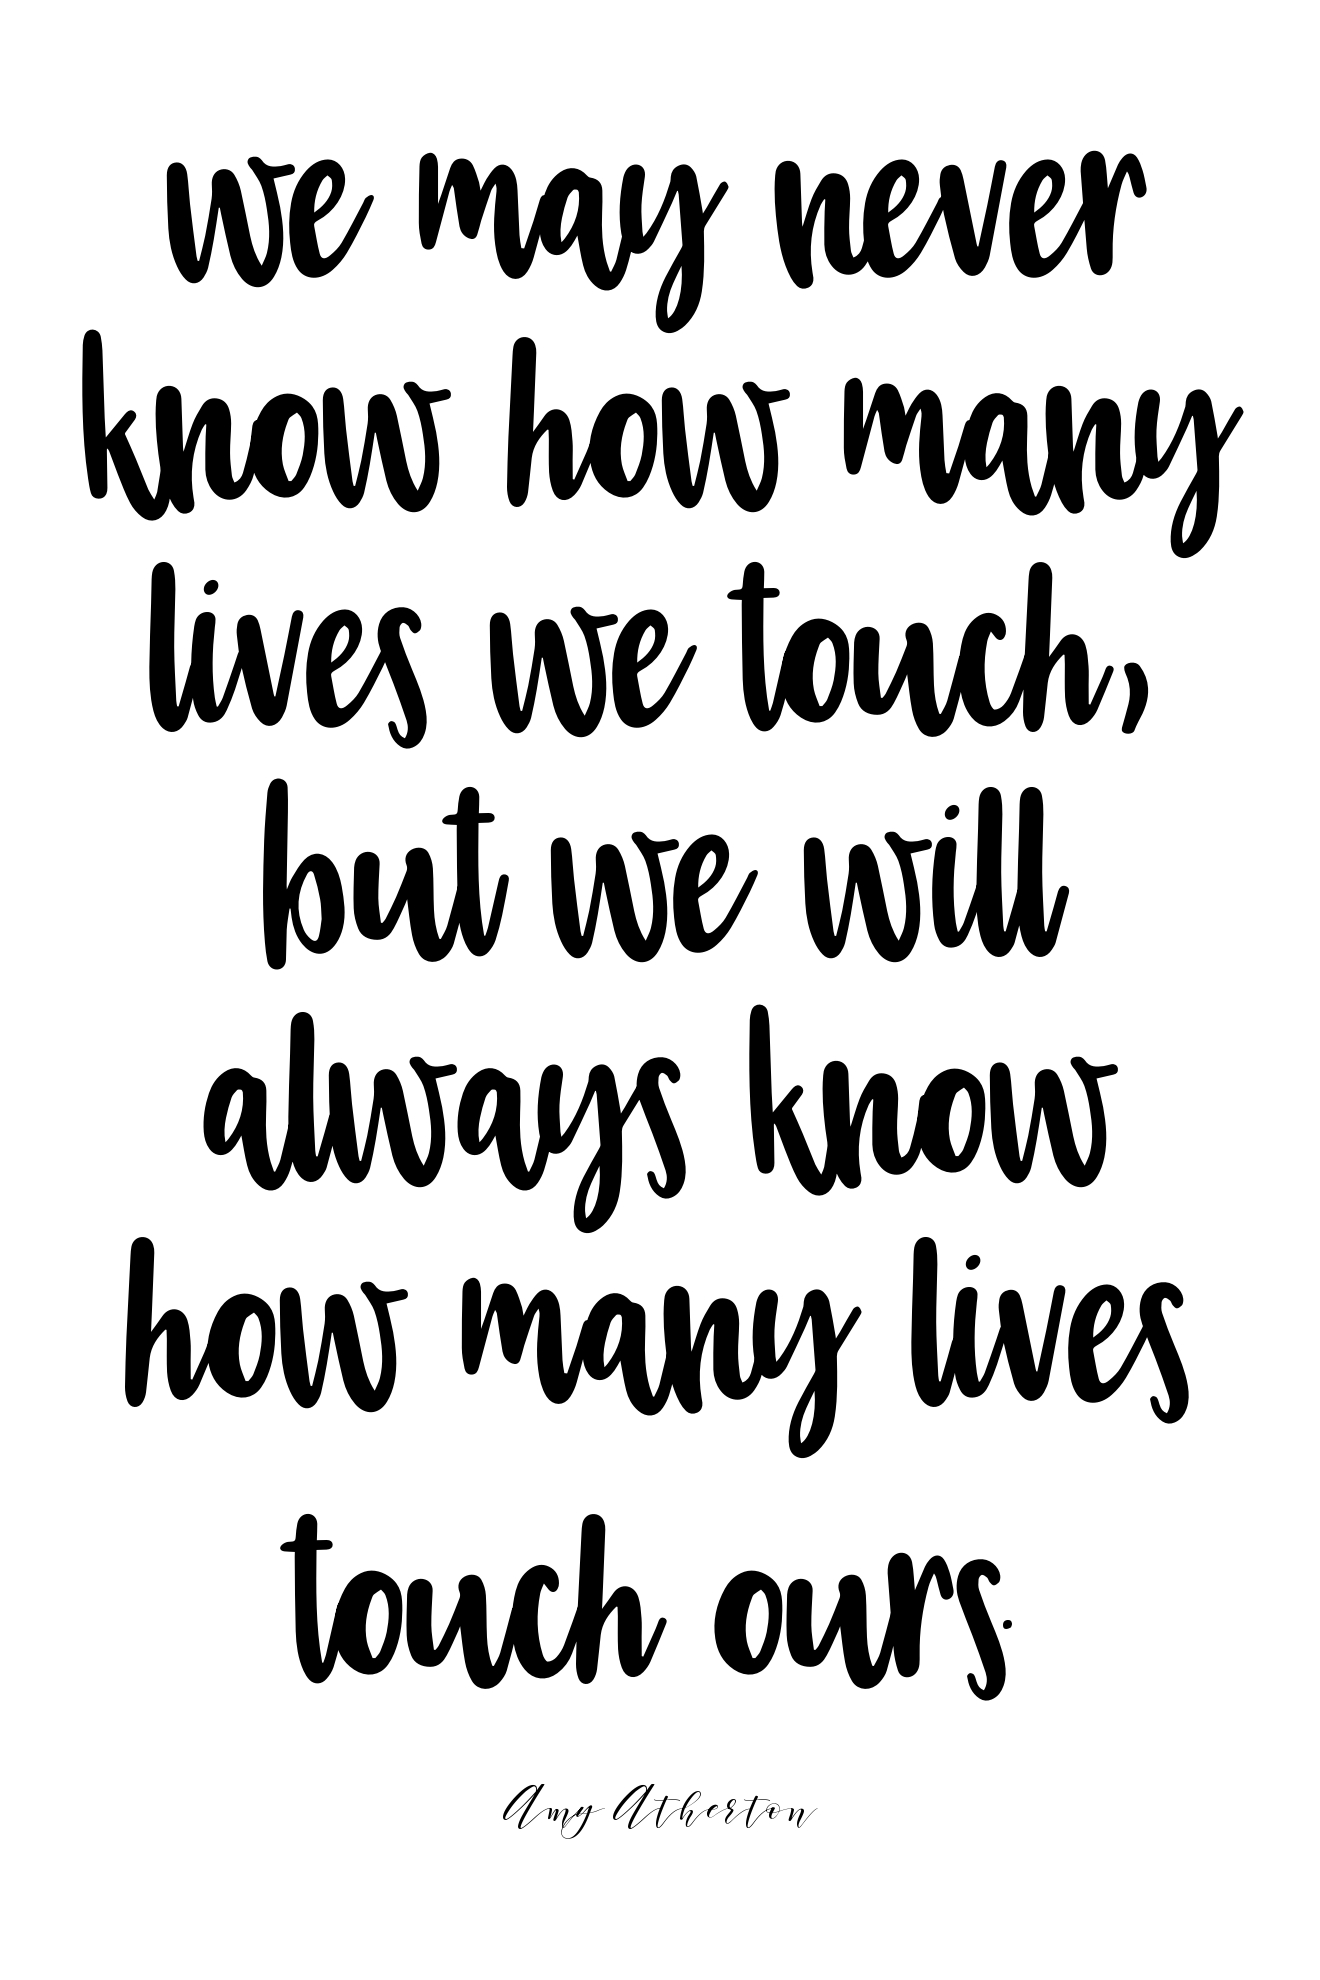 We may never know how many lives we touch, but we will always know how many lives touch ours. | @amybakeshealthy